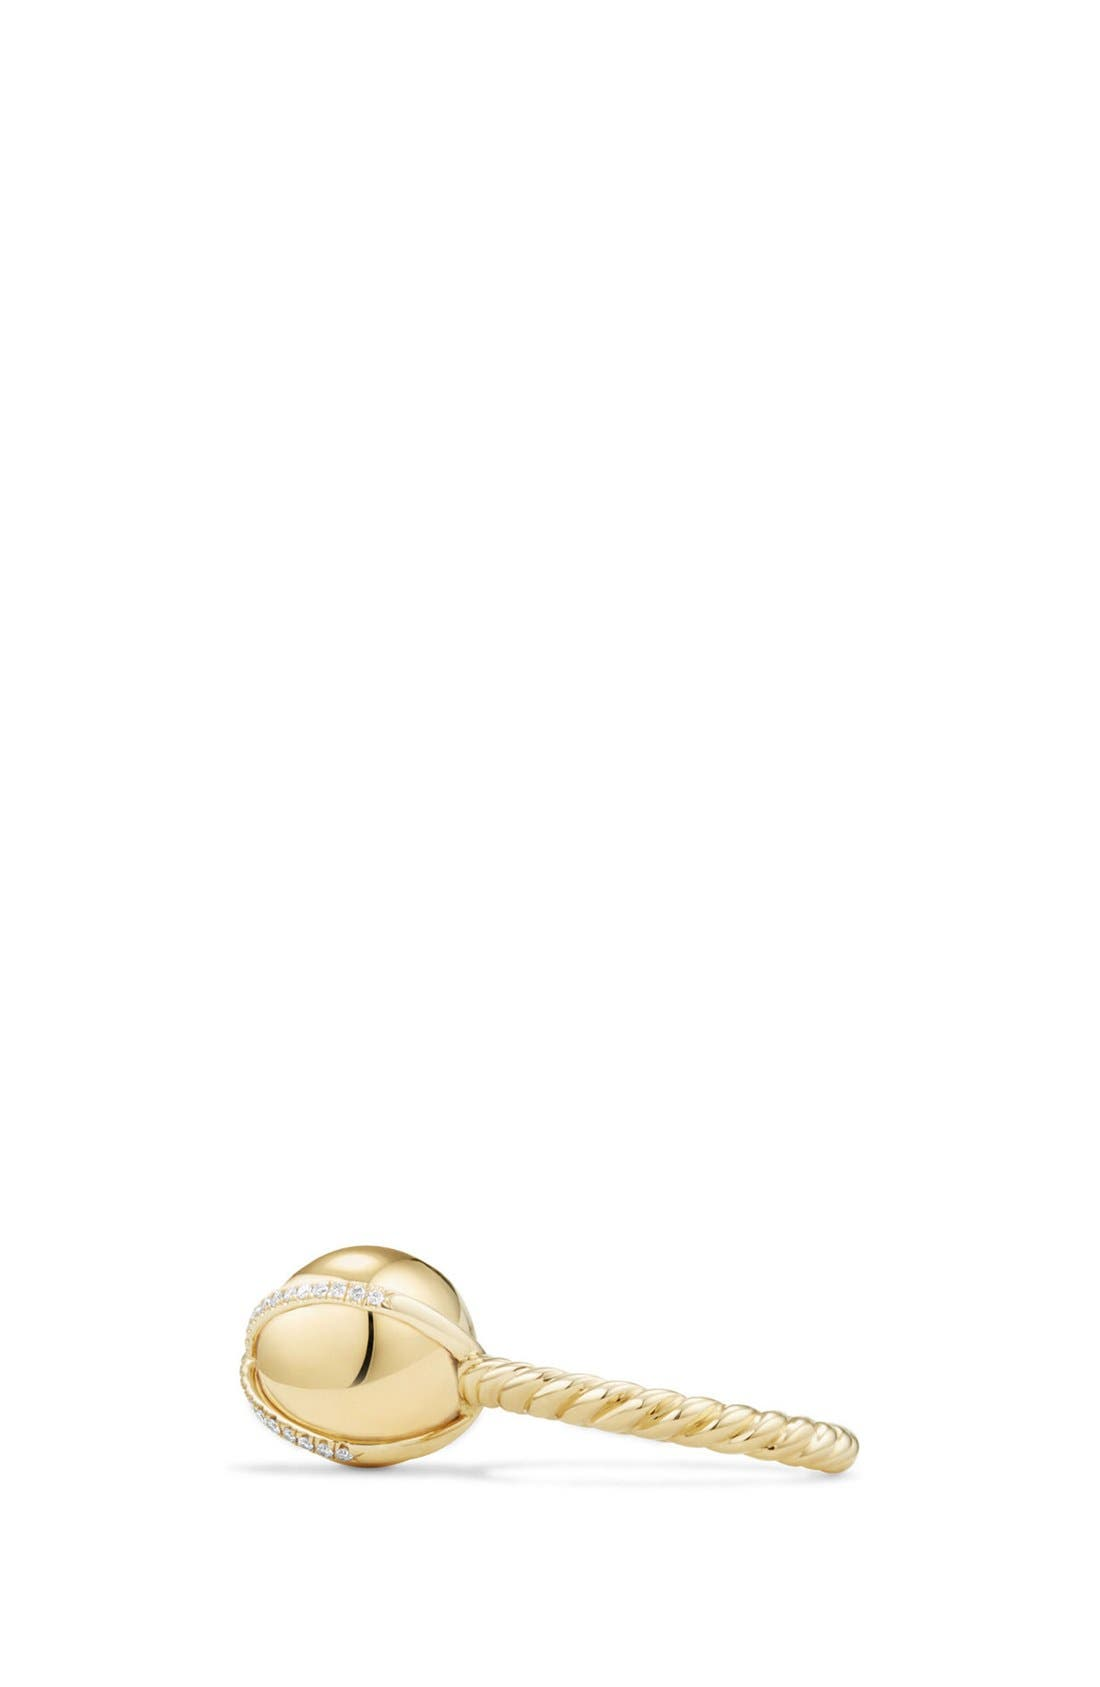 'Solari' Wrap Ring with Pavé Diamonds in 18k Gold,                             Alternate thumbnail 2, color,                             YELLOW GOLD